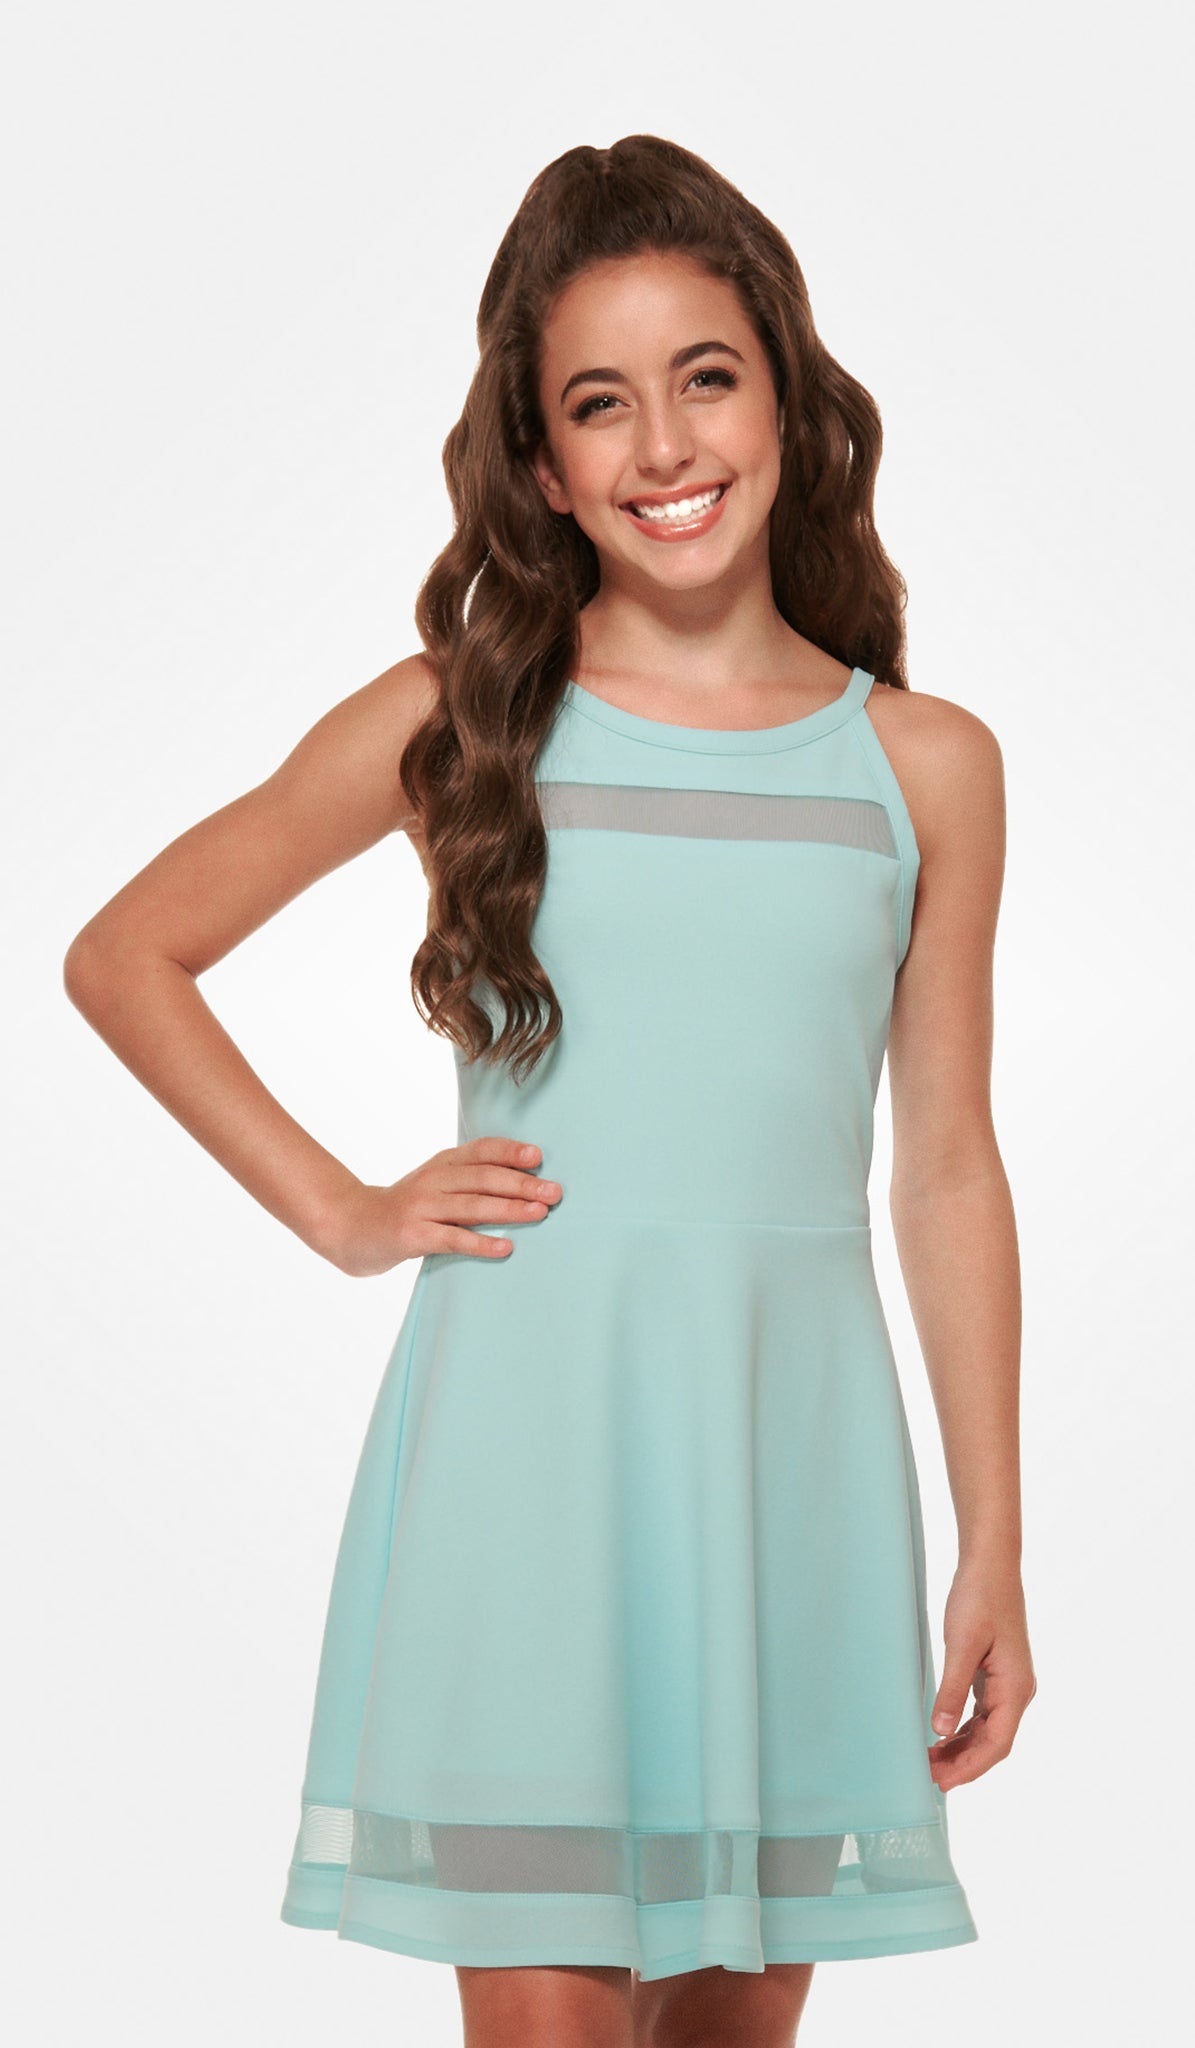 THE TIFFANY DRESS - Sallymiller.com - [variant title] - | Event & Party Dresses for Tween Girls & Juniors | Weddings Dresses, Bat Mitzvah Dresses, Sweet Sixteen Dresses, Graduation Dresses, Birthday Party Dresses, Bar Mitzvah Dresses, Cotillion Dresses